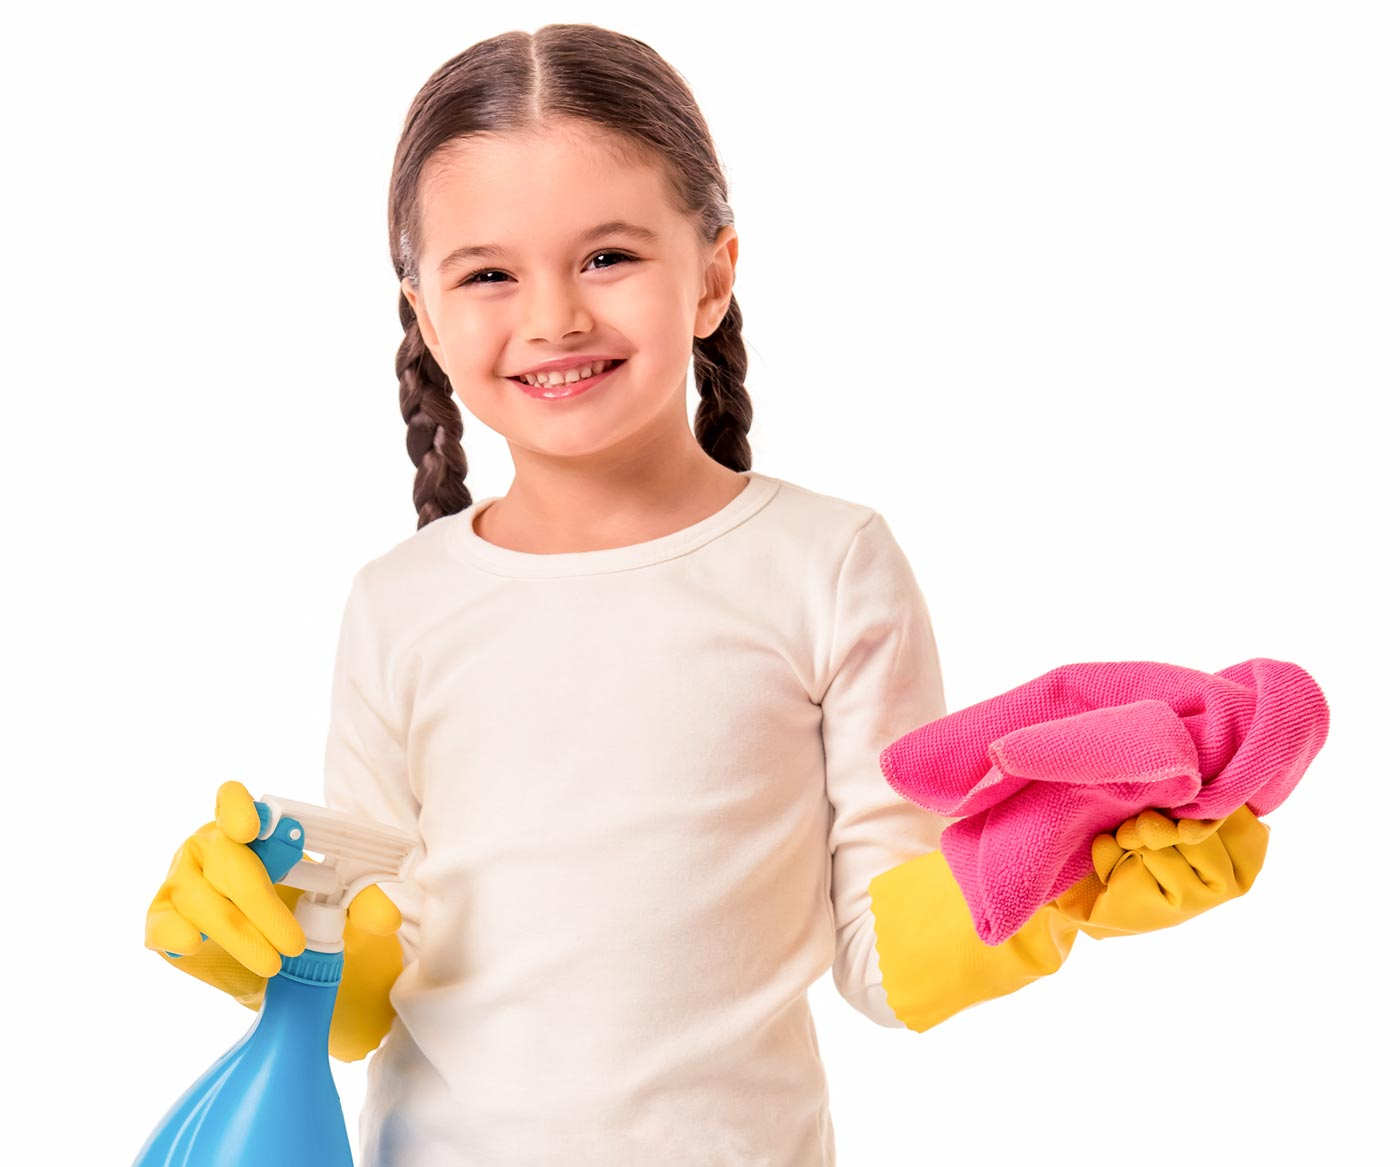 Why kids should have chores